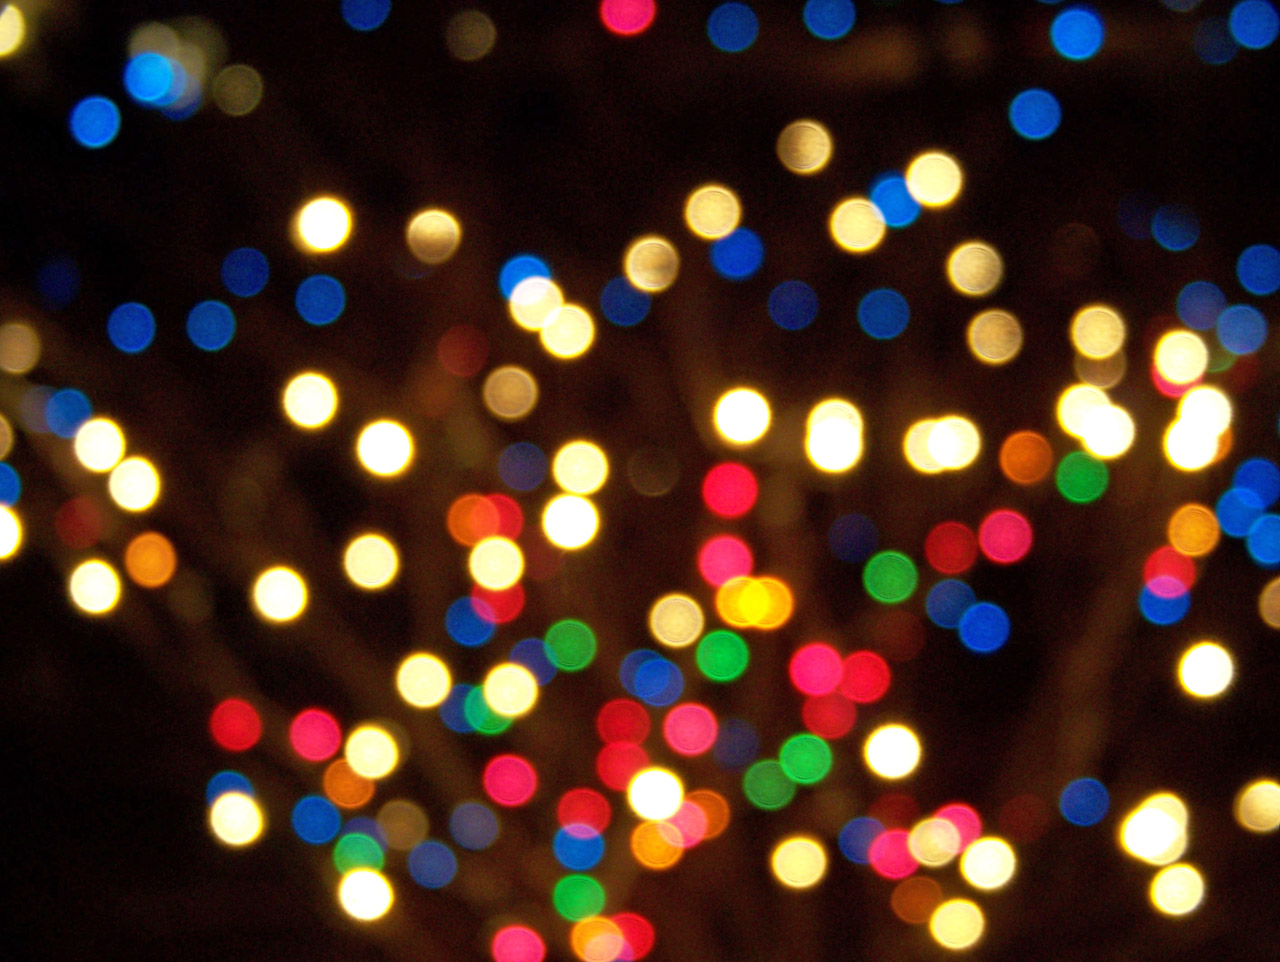 out-of-focus-christmas-lights.jpg